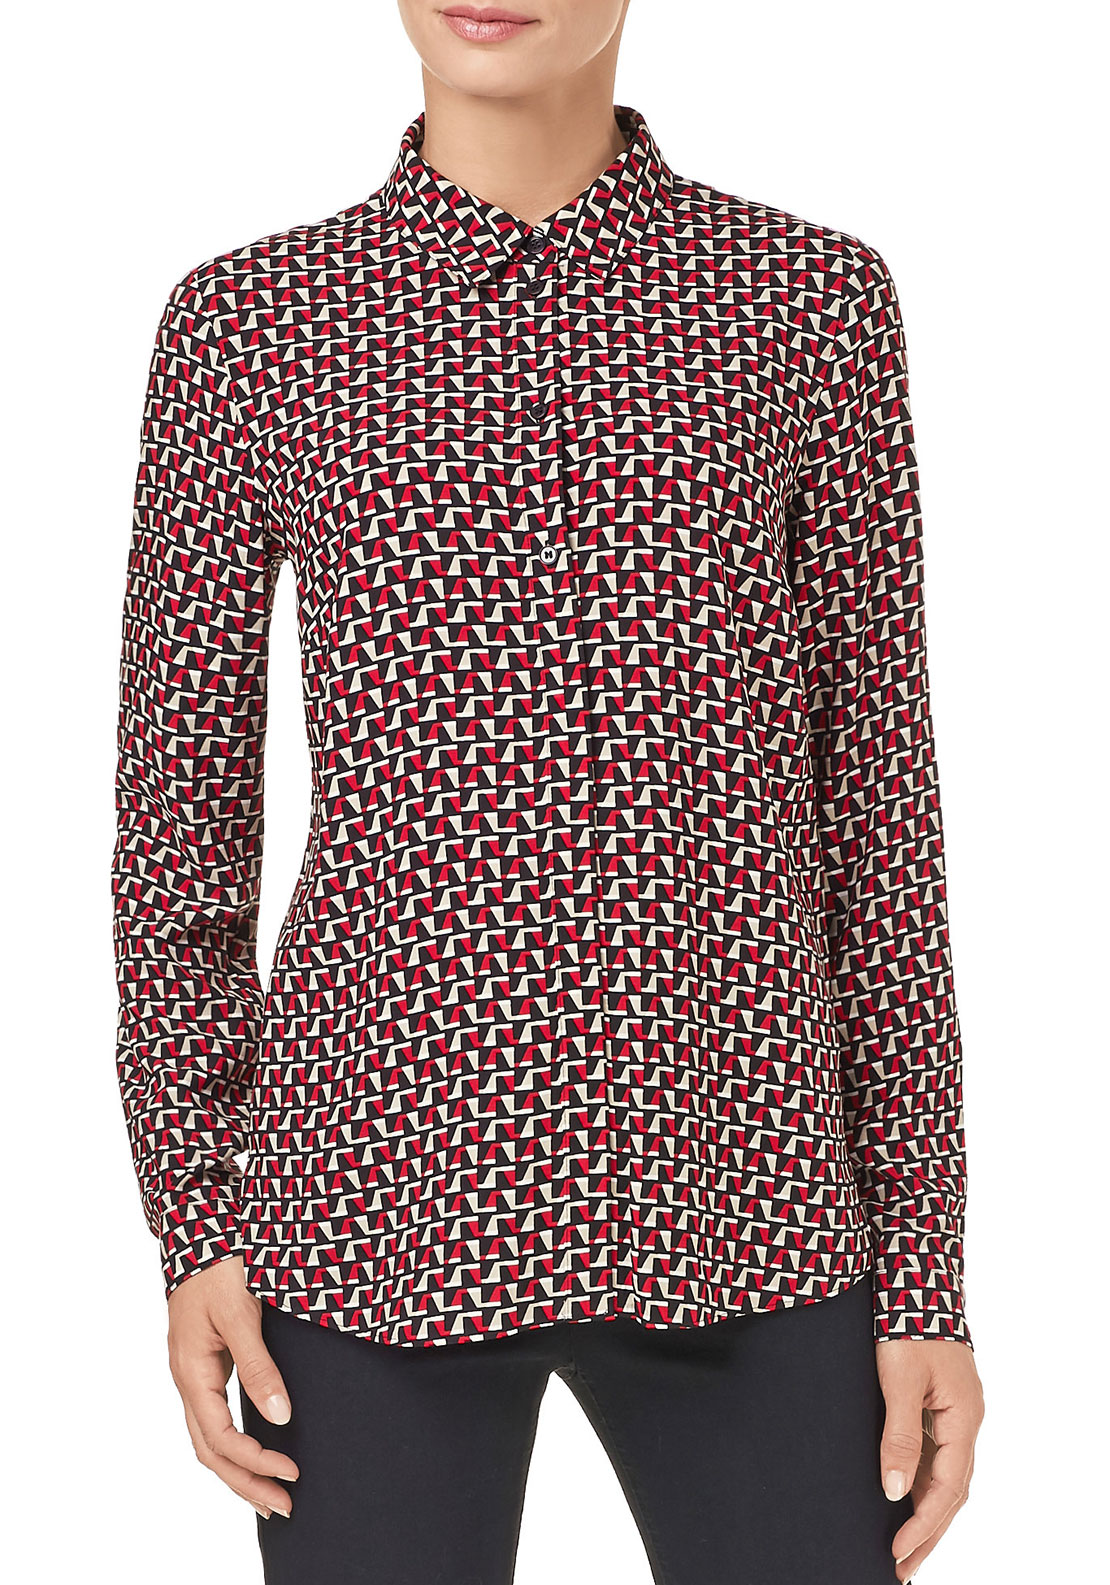 Gerry Weber Geometric Print Blouse, Red Multi